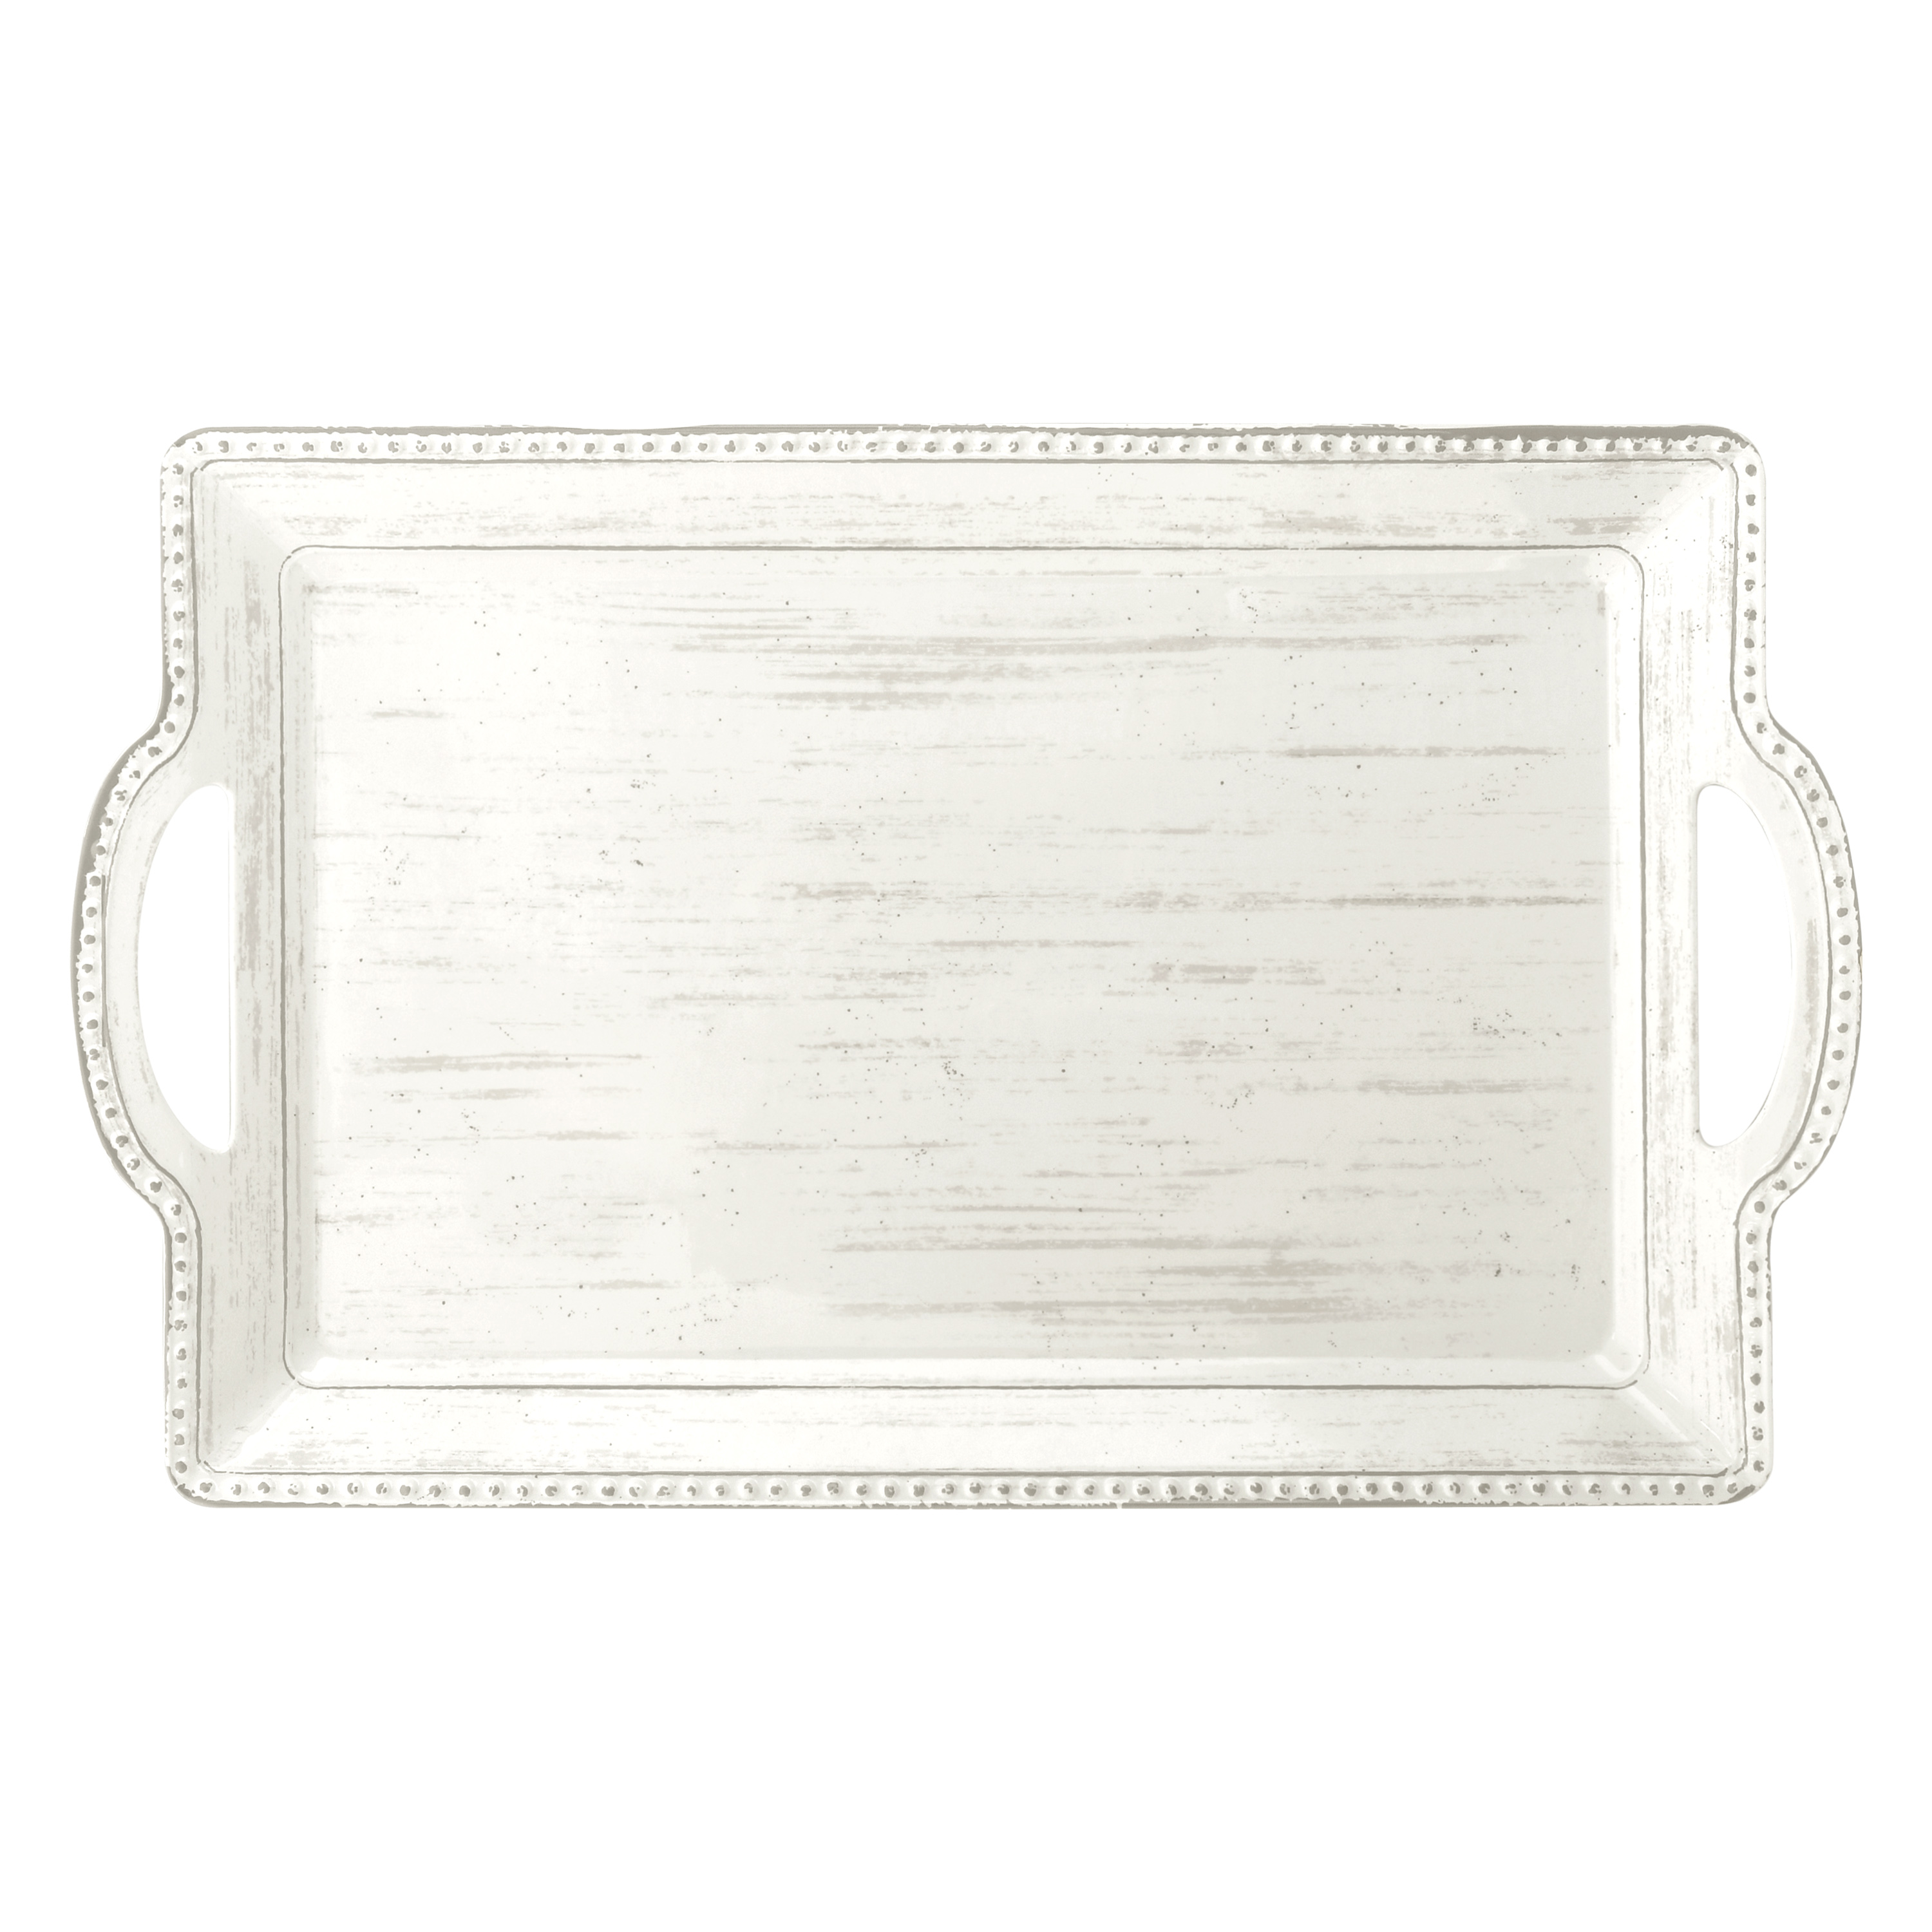 French Country Serving Tray with Handles, Oyster slideshow image 1